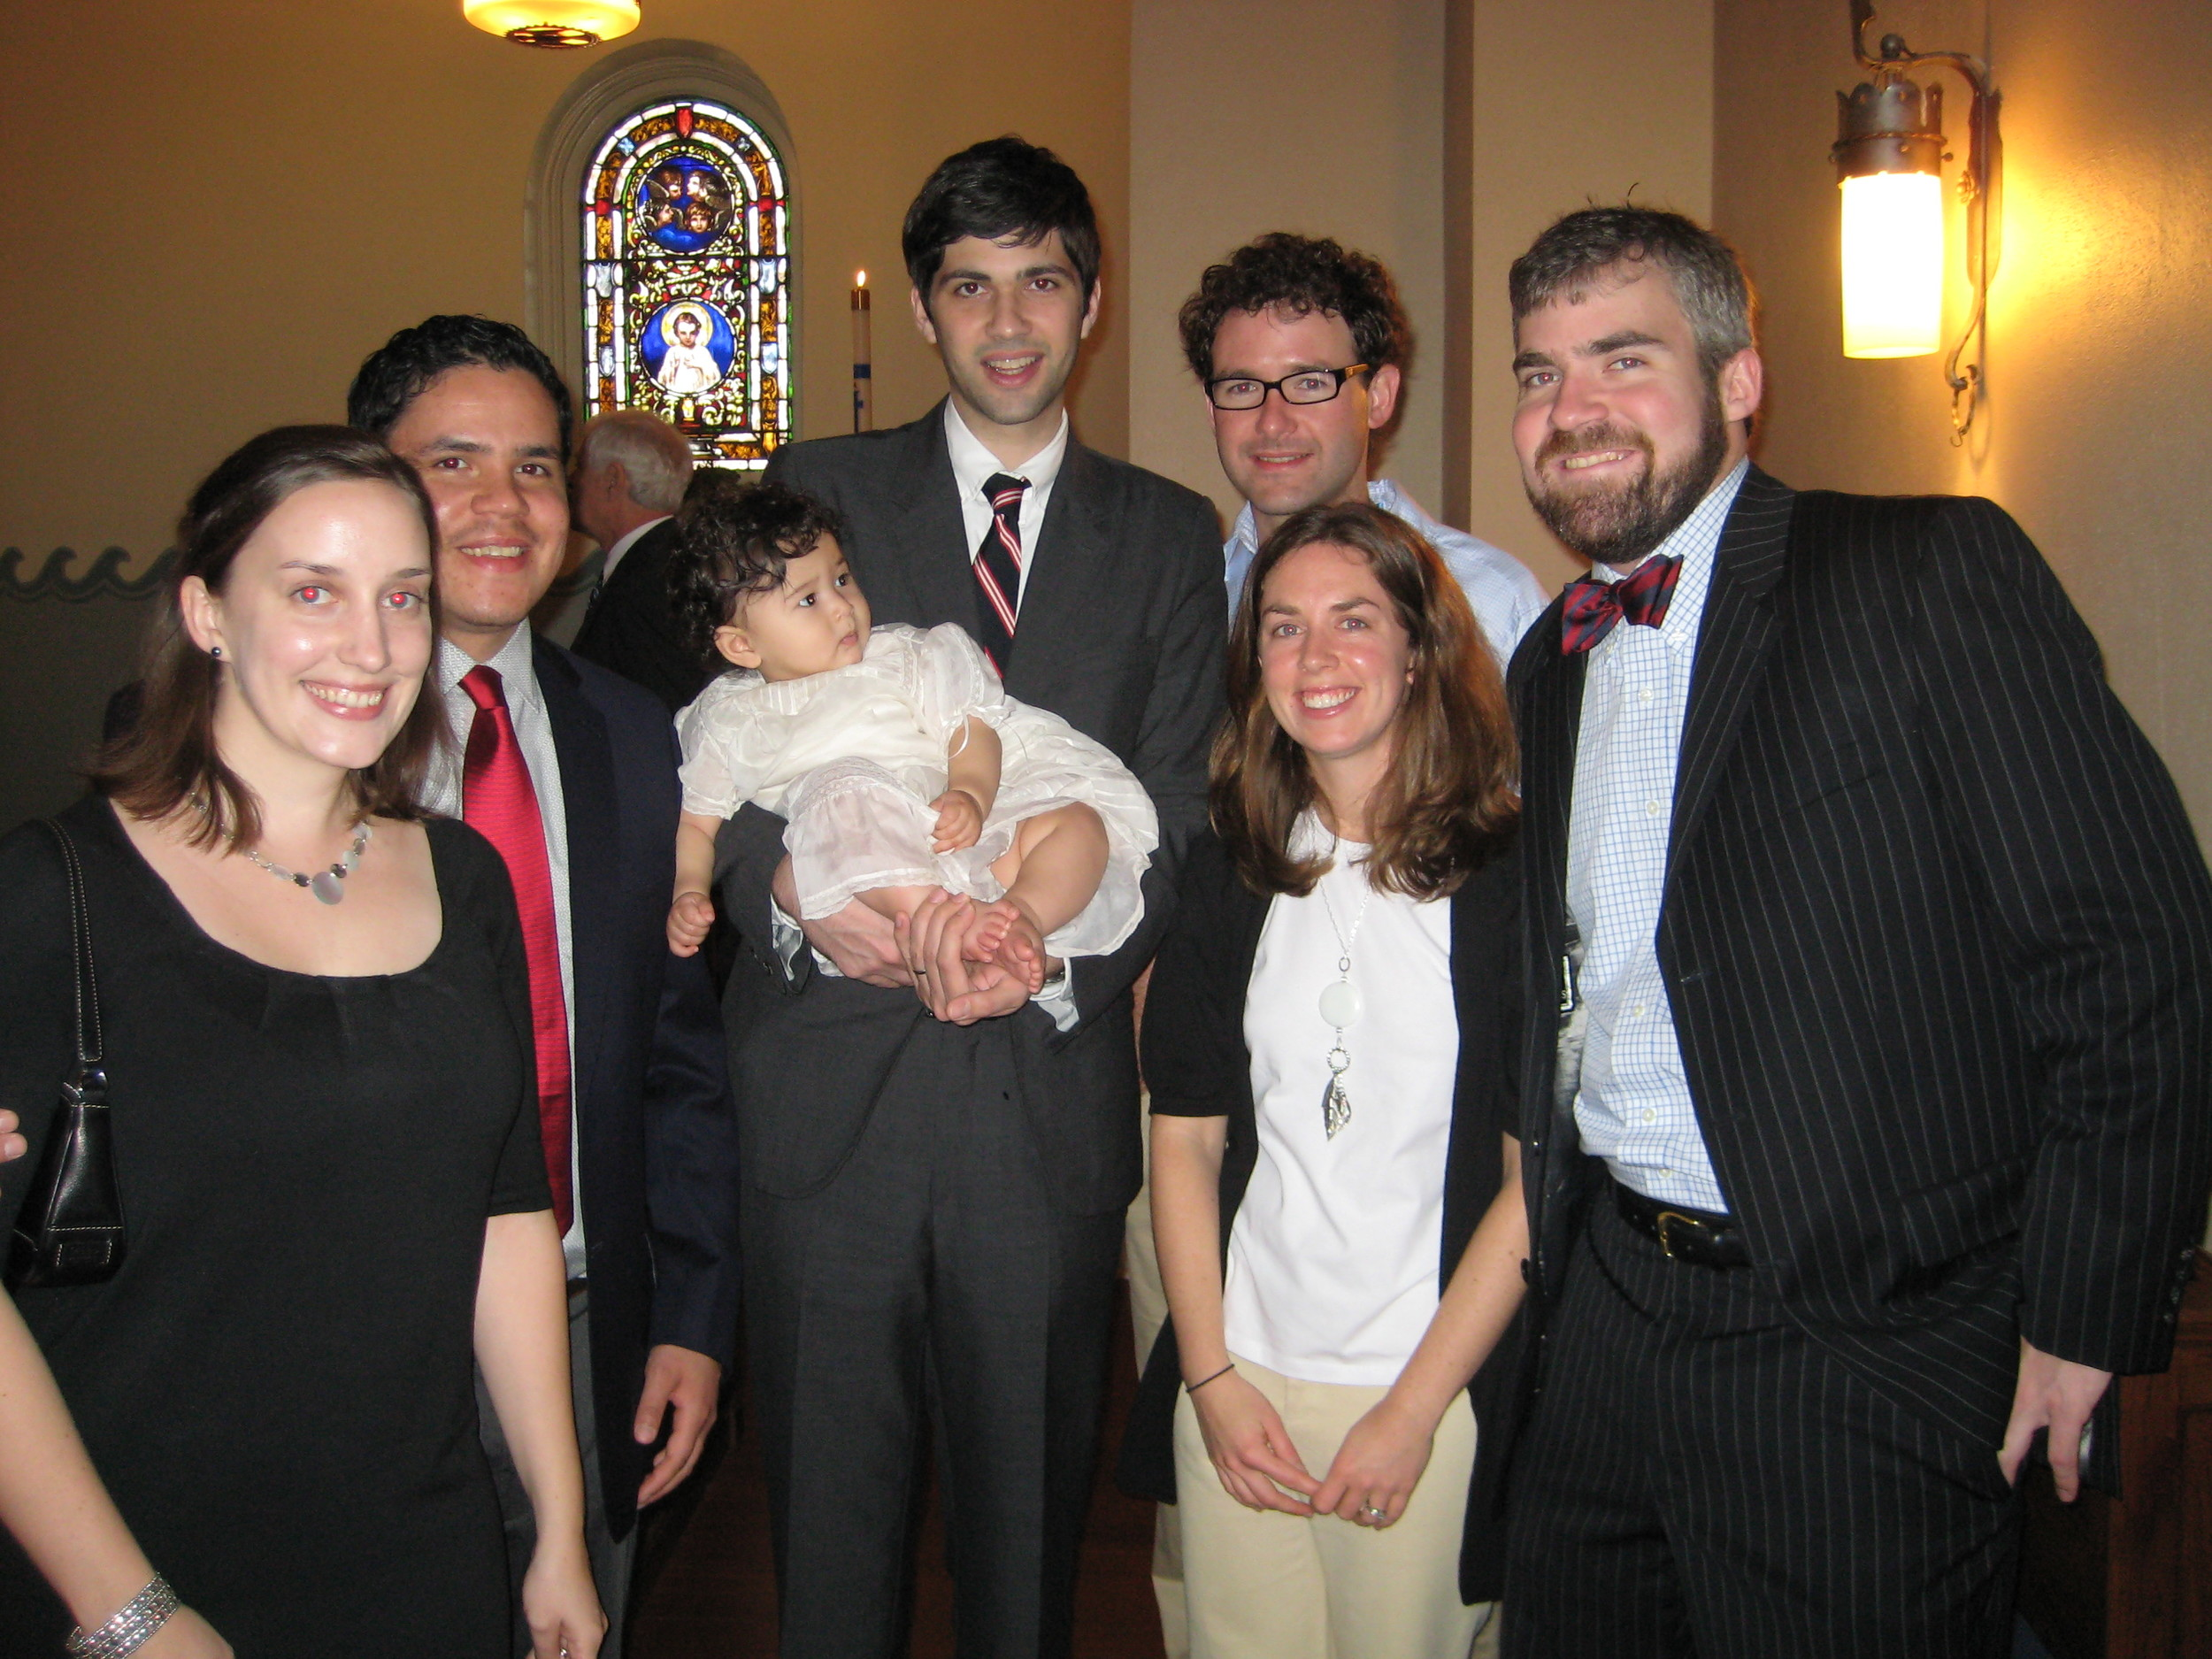 high school clan at rowe's christening